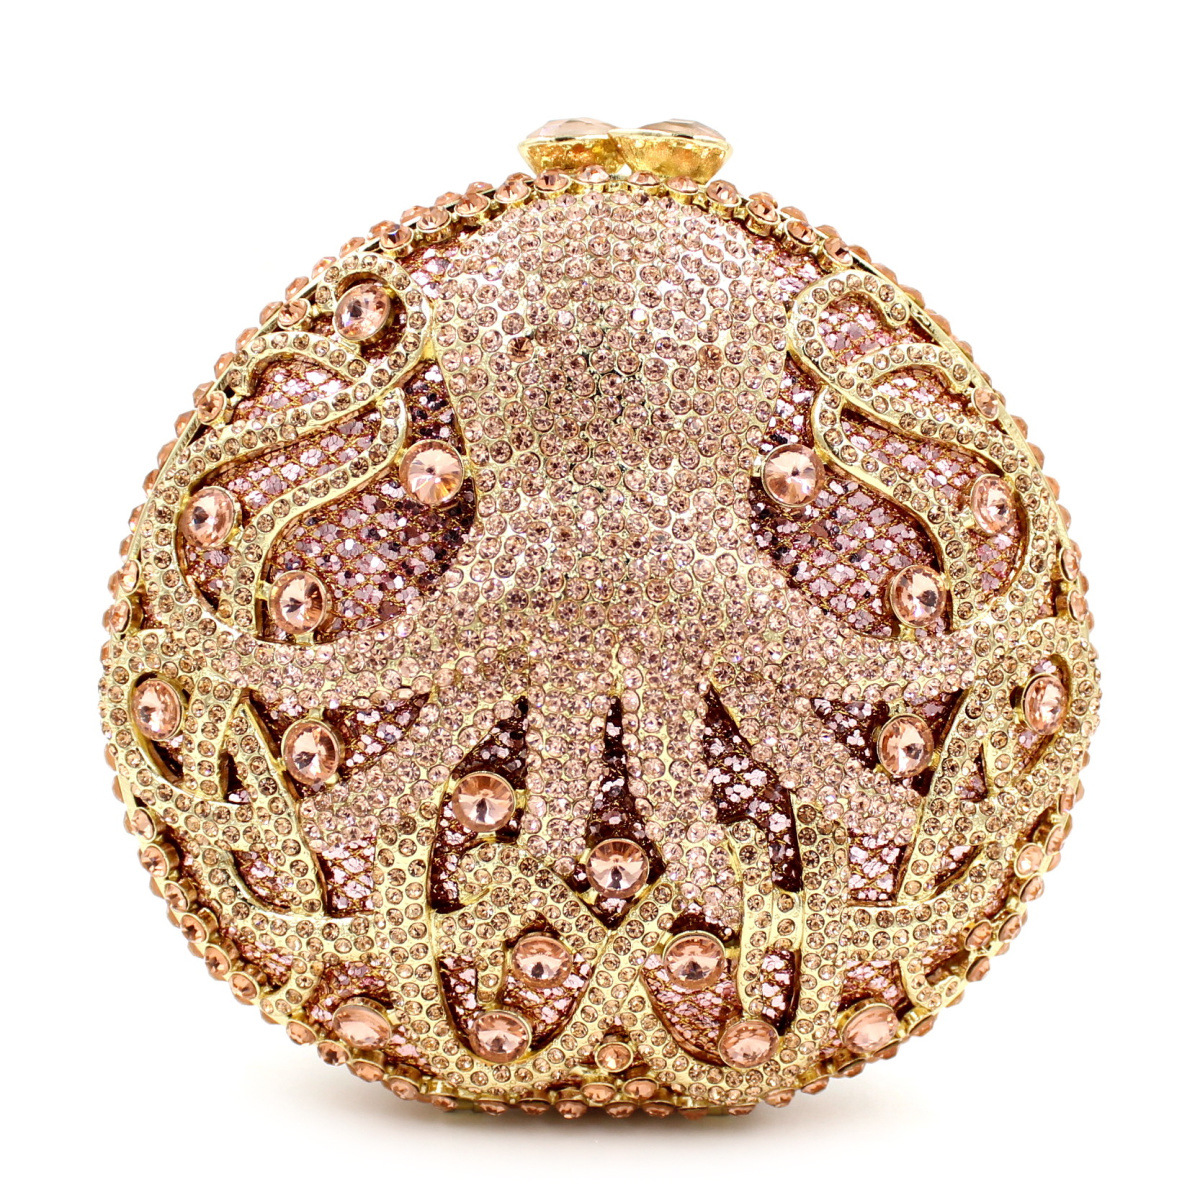 Of Direct Selling New Arrival 2017 Selling For Octopus Diamond Evening Bag High-grade Hand Full Dinner Package On Behalf Of The